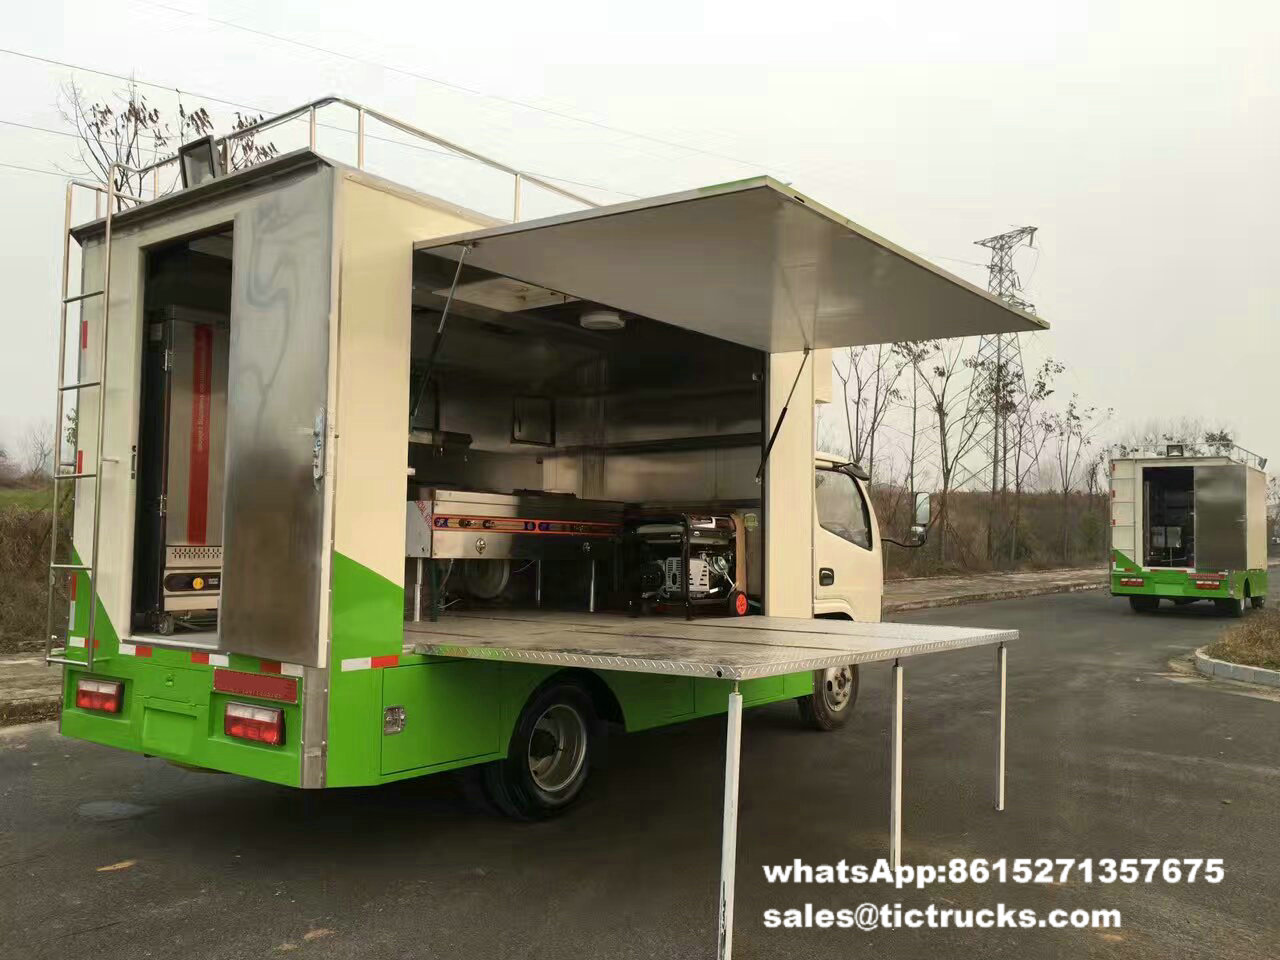 dongfeng food cooking truck-003-_1.jpg